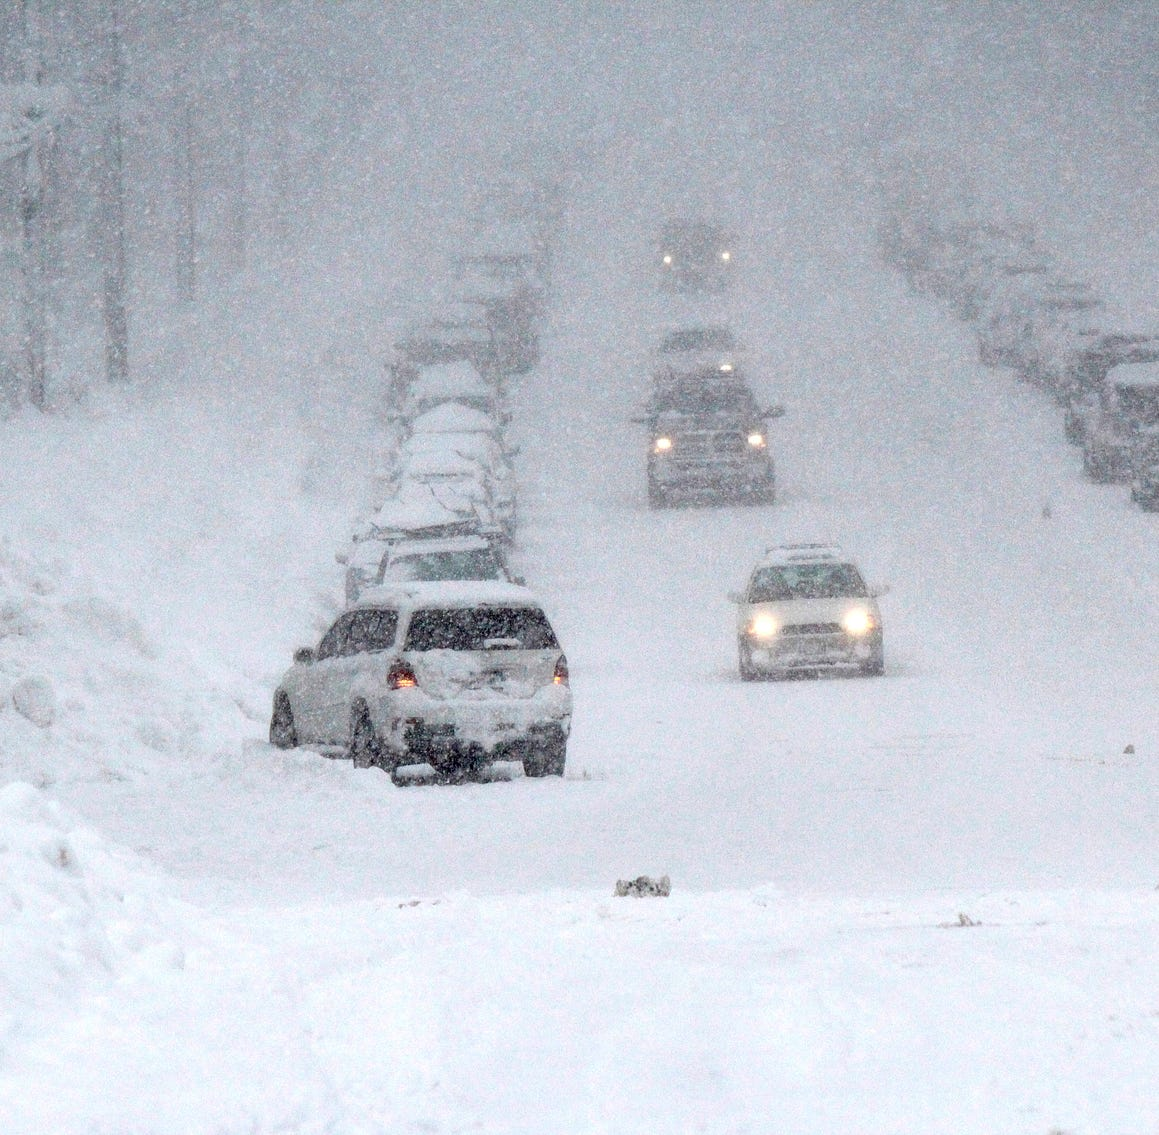 Buckle up and hunker down: Coast-to-coast storm to bring weather misery to 200 million